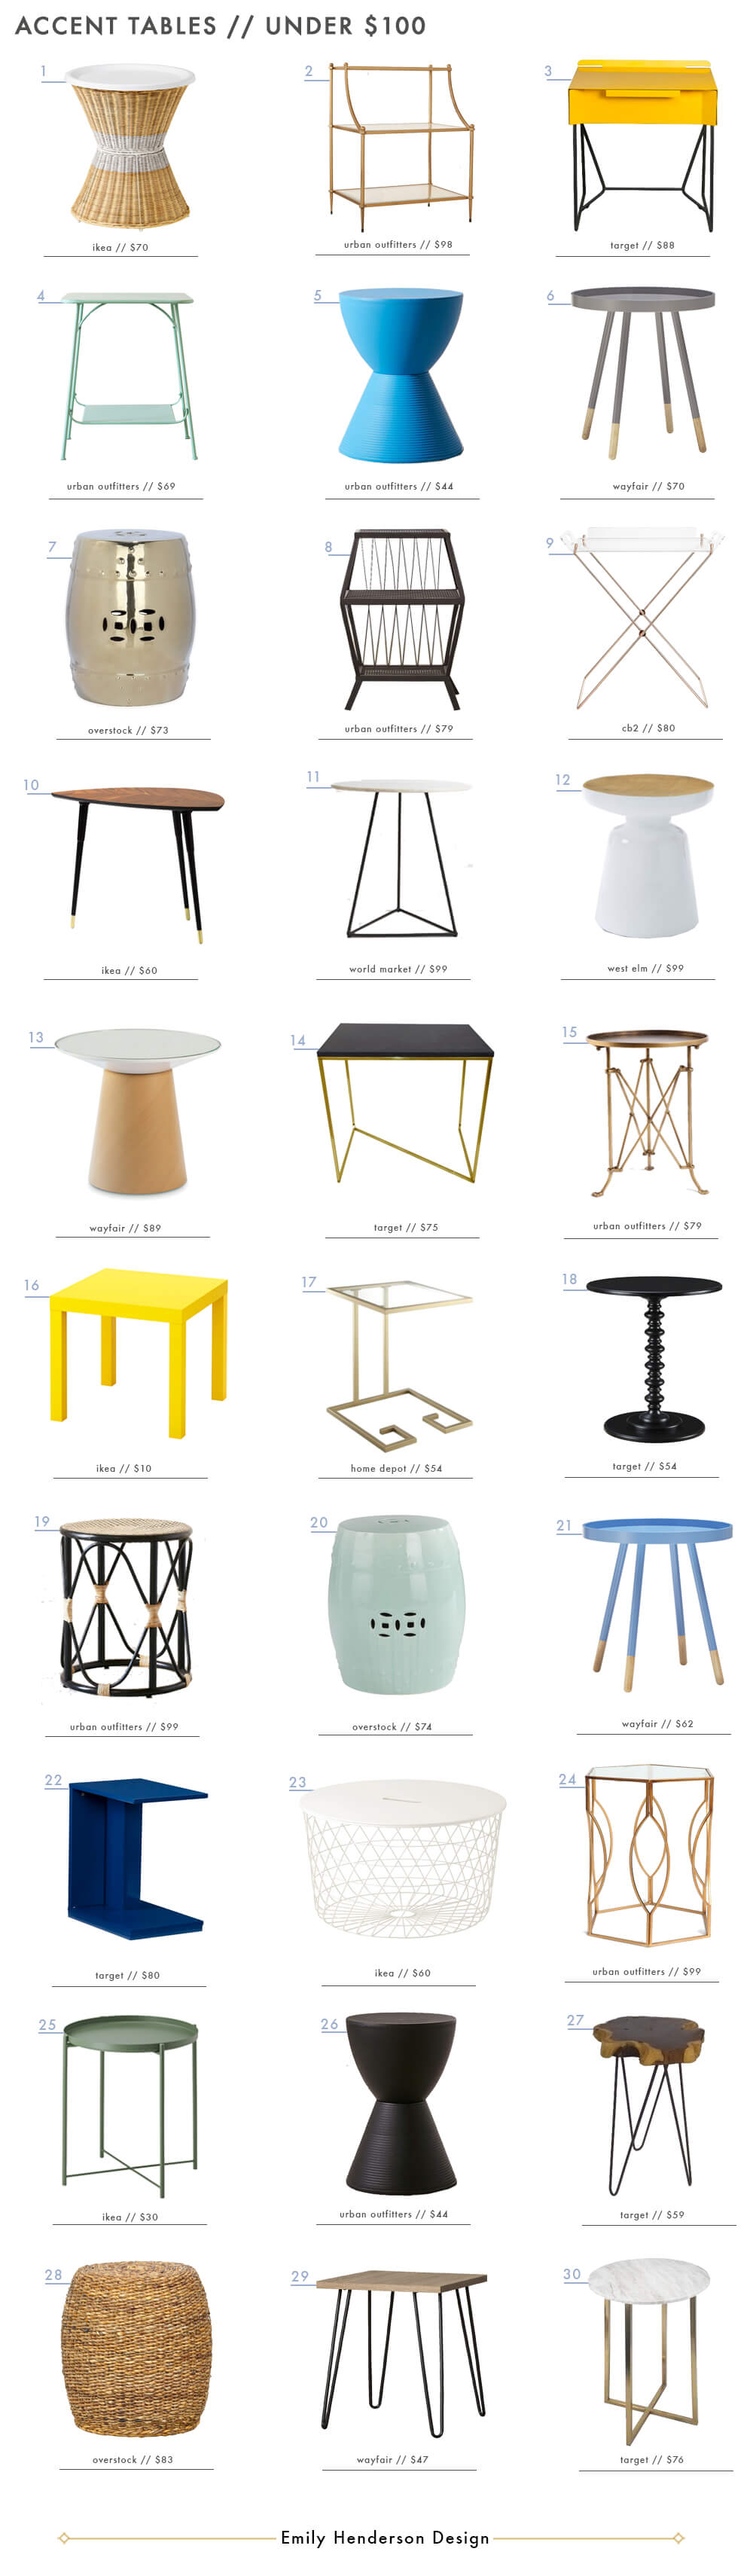 accent tables under emily henderson side shape acrylic table piece nesting set gothic furniture frog drum bronze ashley sofa black wrought iron coffee simple runner patterns bbq